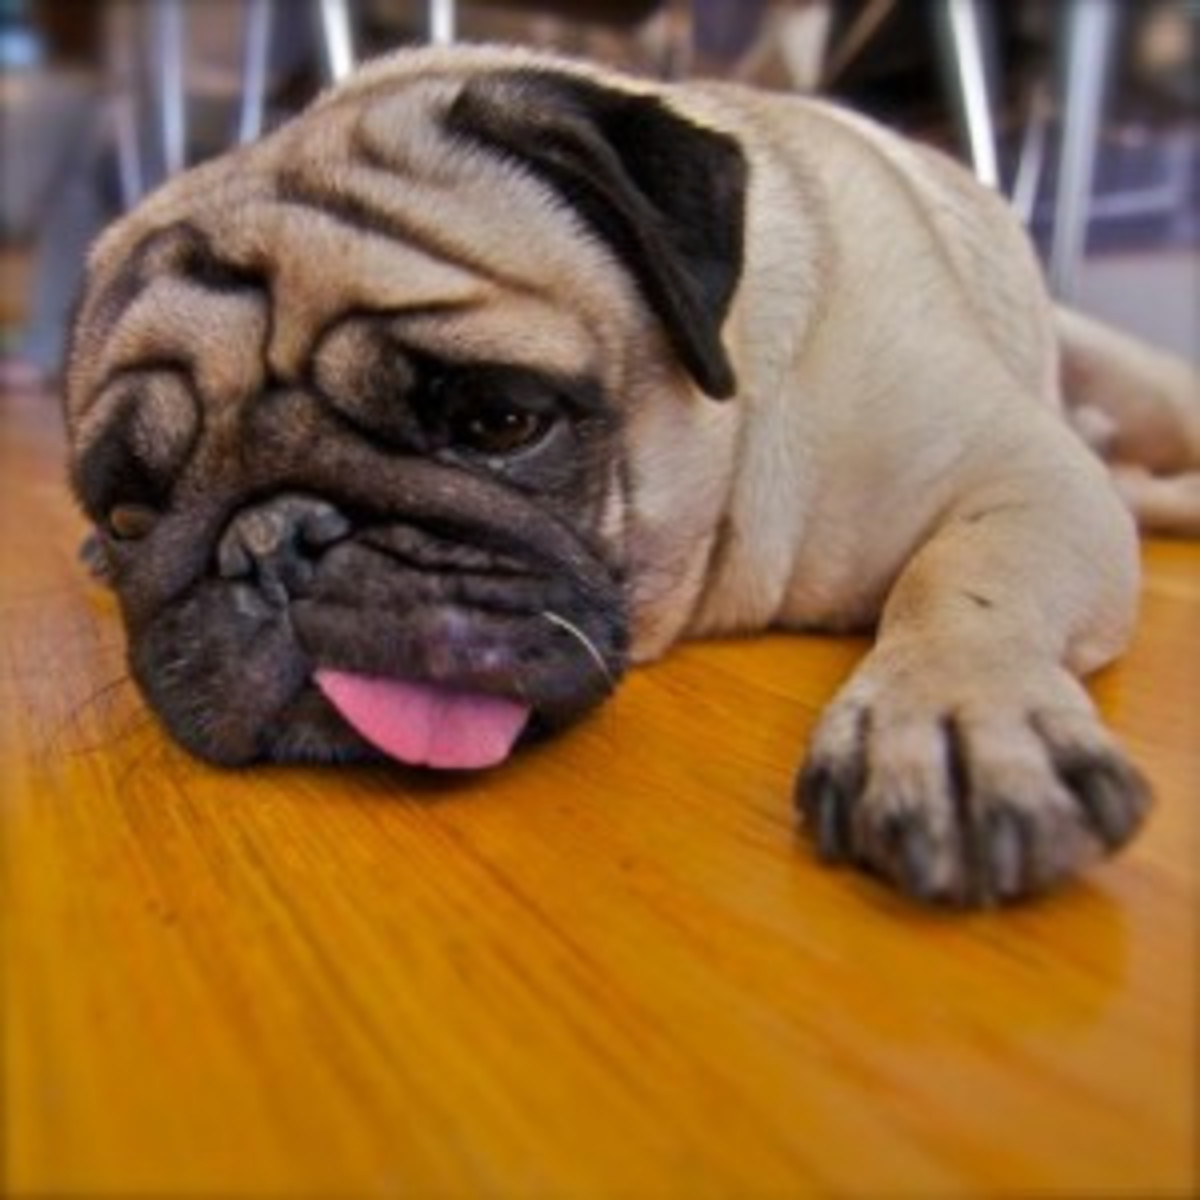 Obese dogs suffer and then die young.